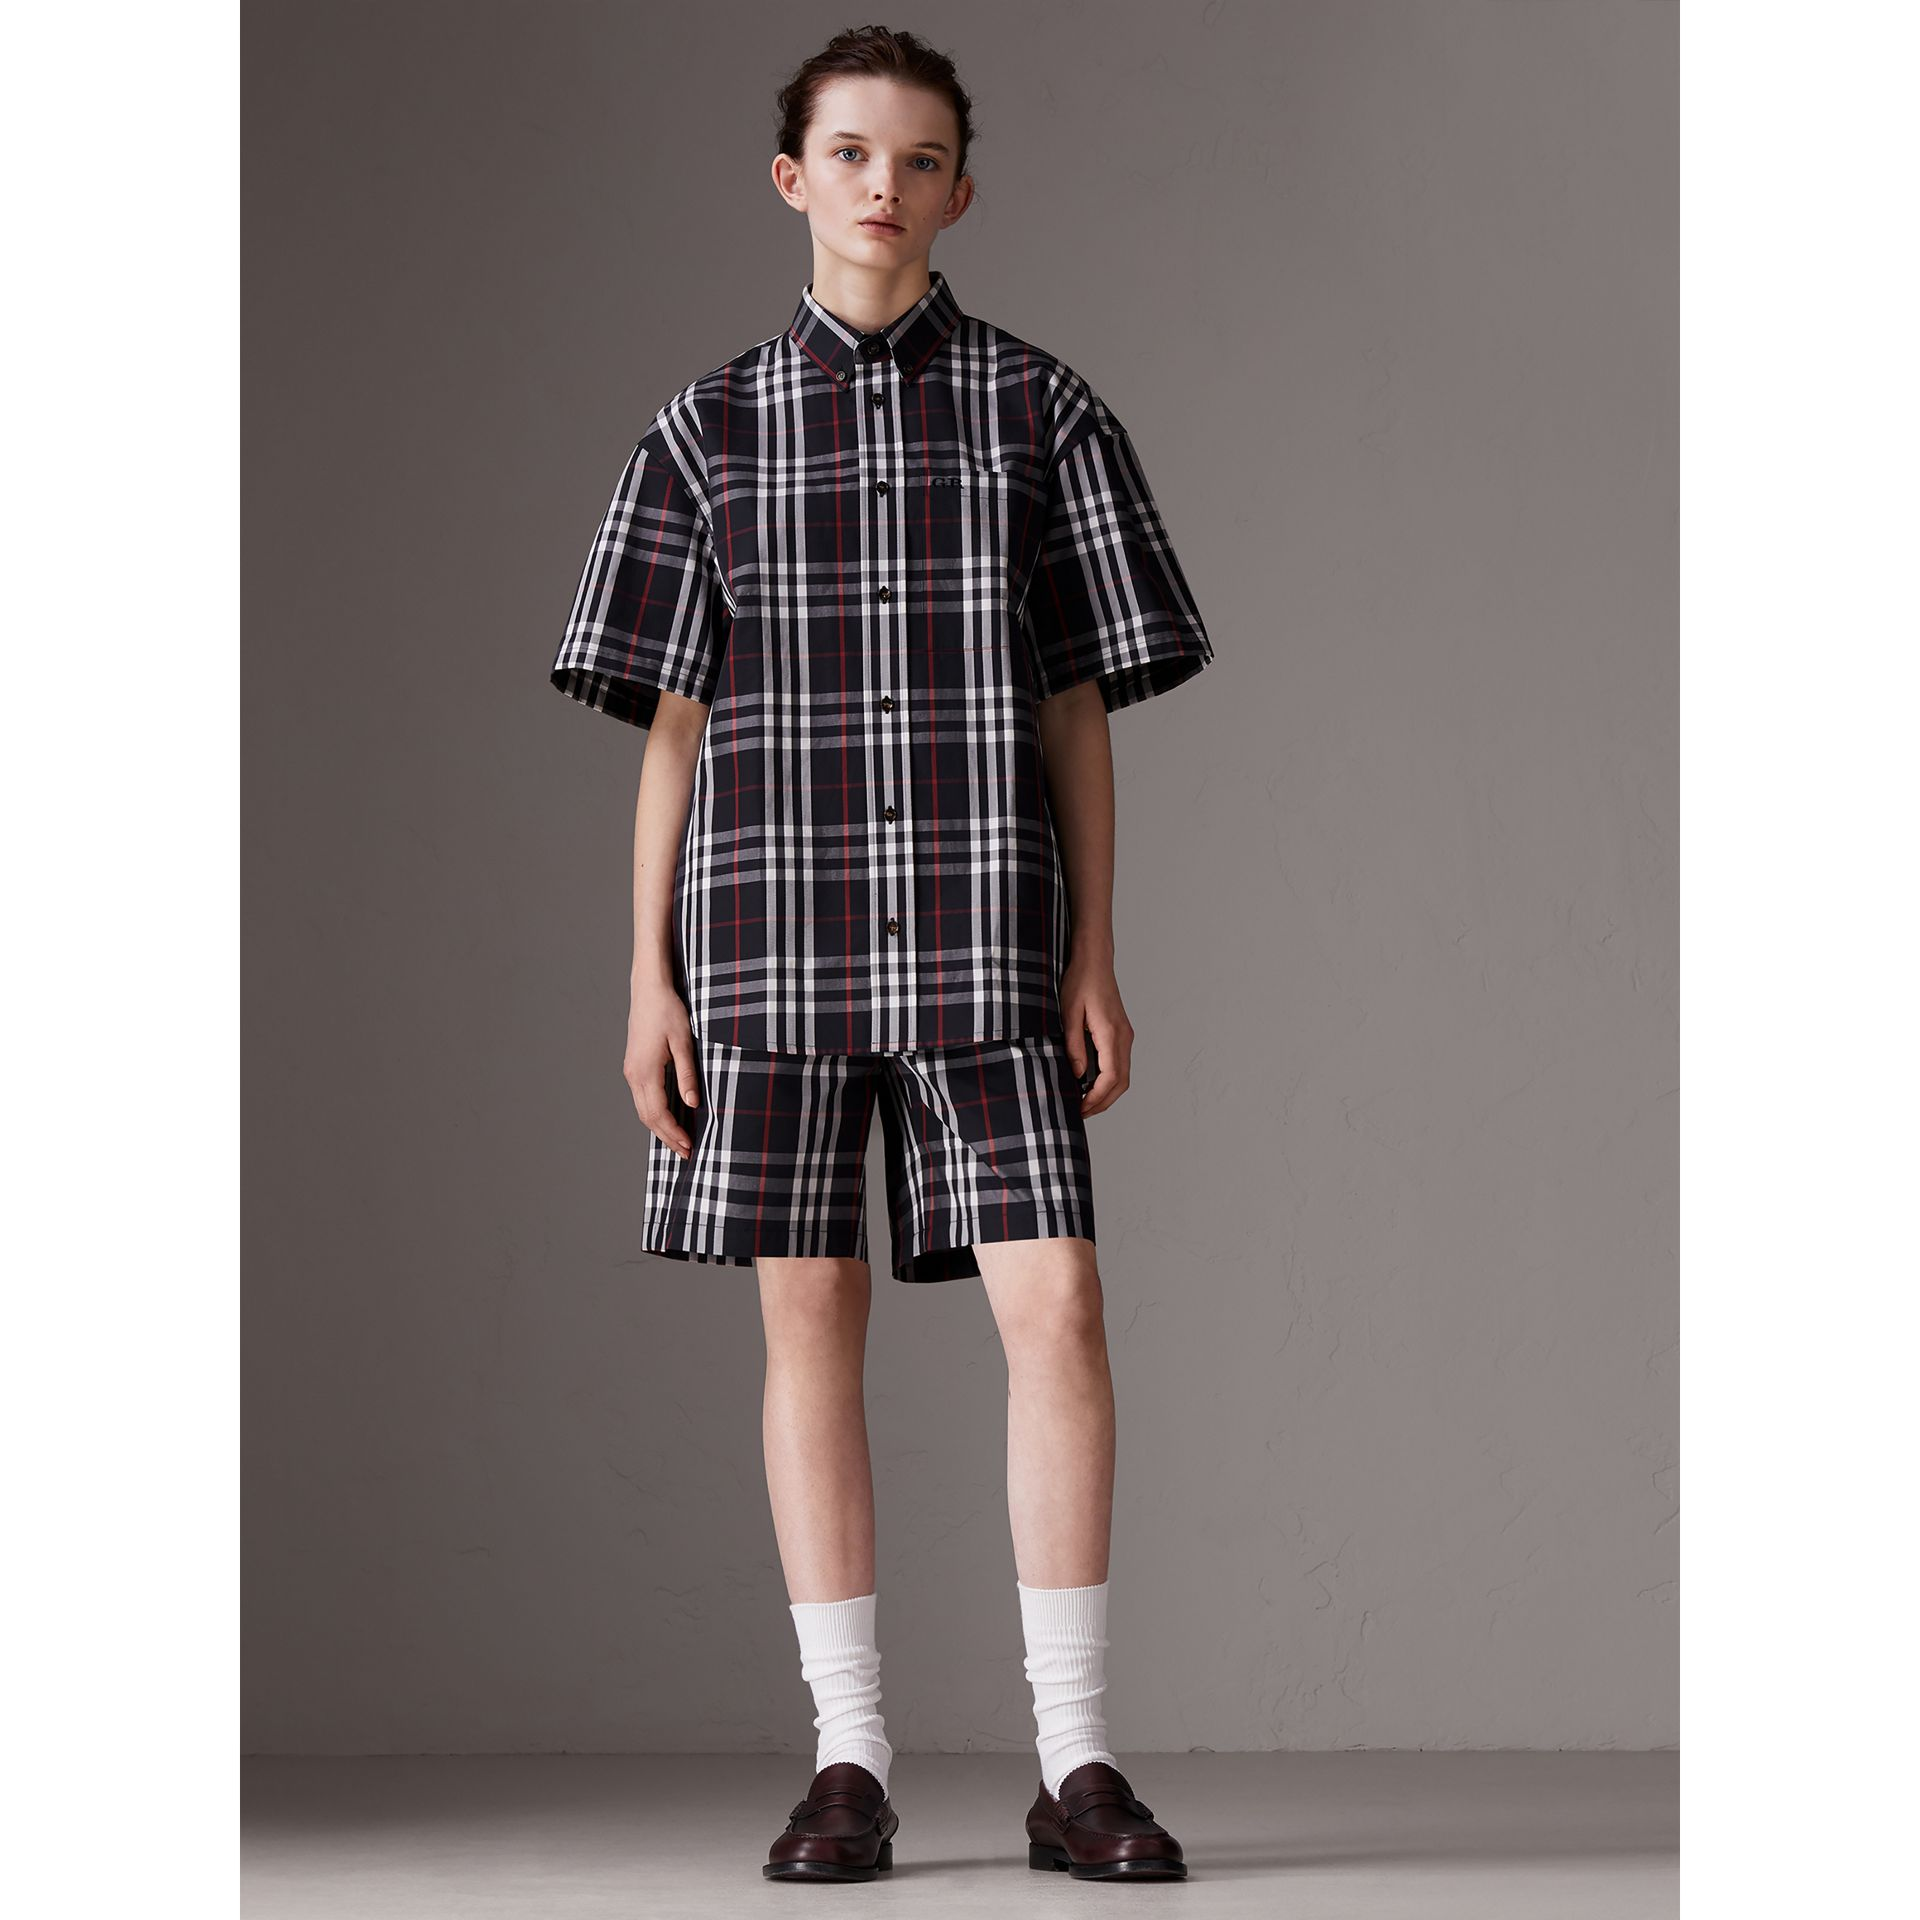 Gosha x Burberry Short-sleeve Check Shirt in Navy - Men | Burberry United Kingdom - gallery image 3